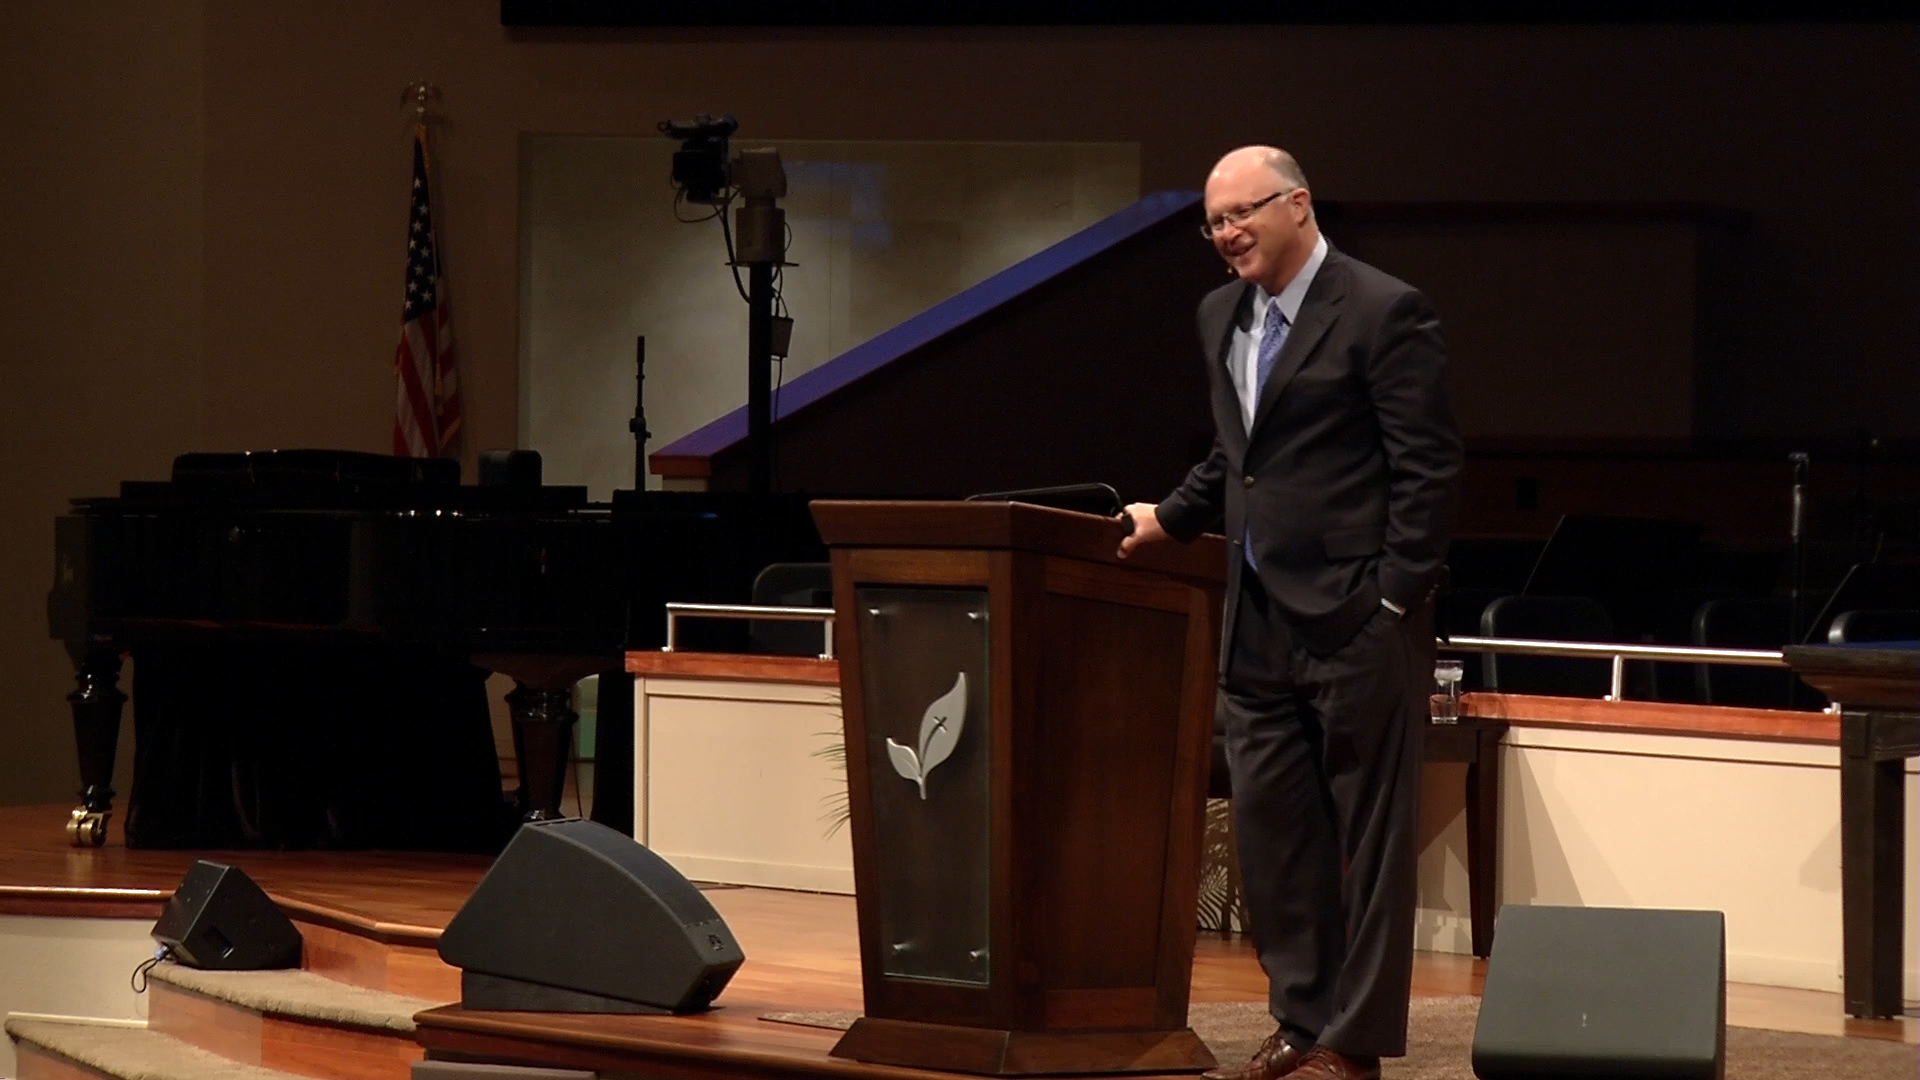 Pastor Paul Chappell: The Perfection of Grace